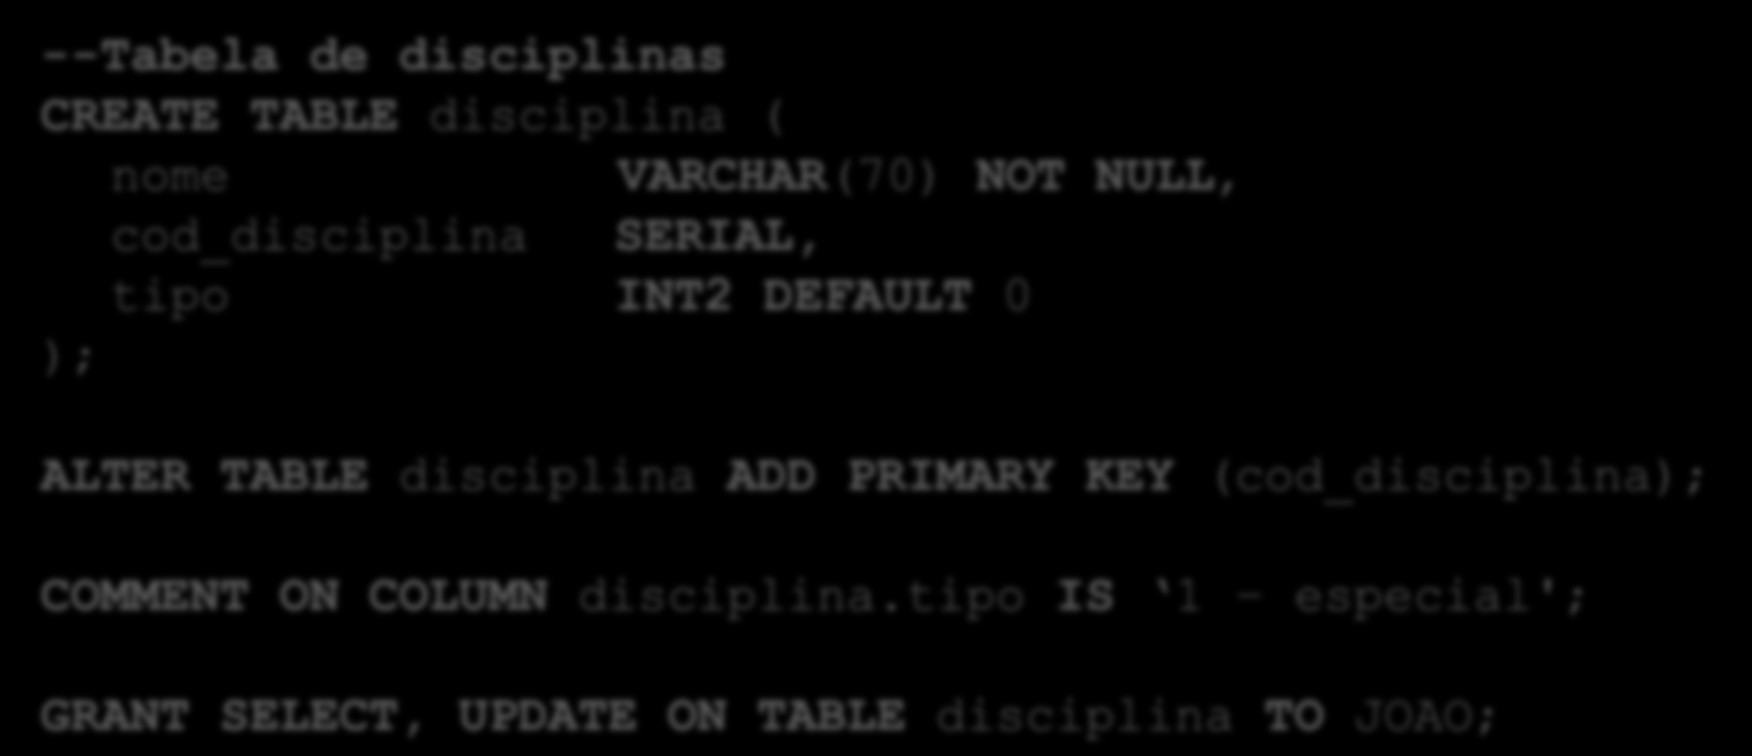 --Tabela de disciplinas CREATE TABLE disciplina ( nome VARCHAR(70) NOT NULL, cod_disciplina SERIAL, tipo INT2 DEFAULT 0 ); ALTER TABLE